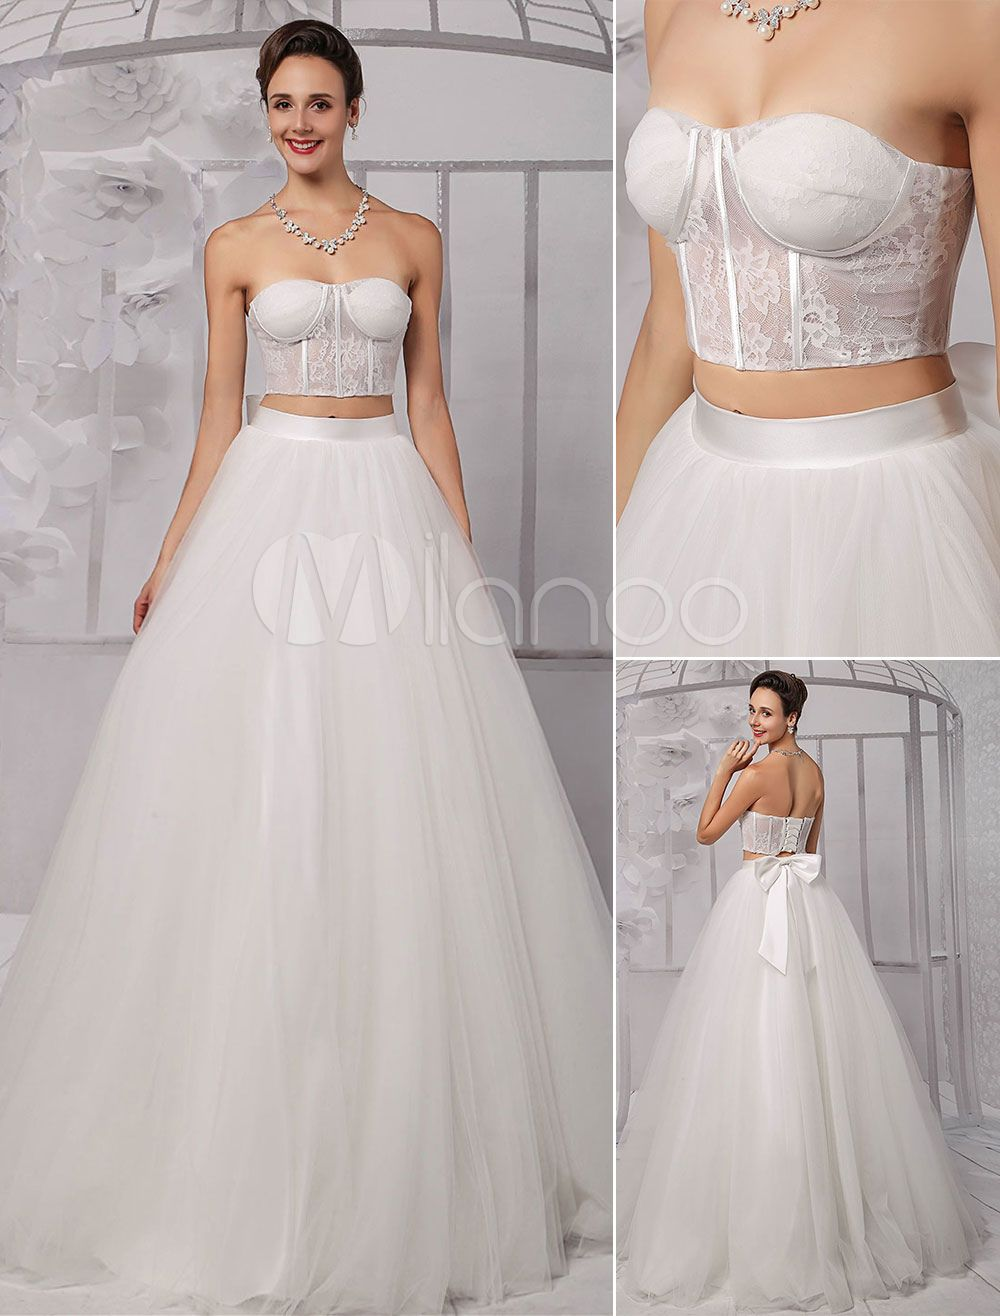 crop top wedding dress Two Pieces Strapless Lace Corset Crop Top Ball Gown Wedding Dress With Tulle Skirt